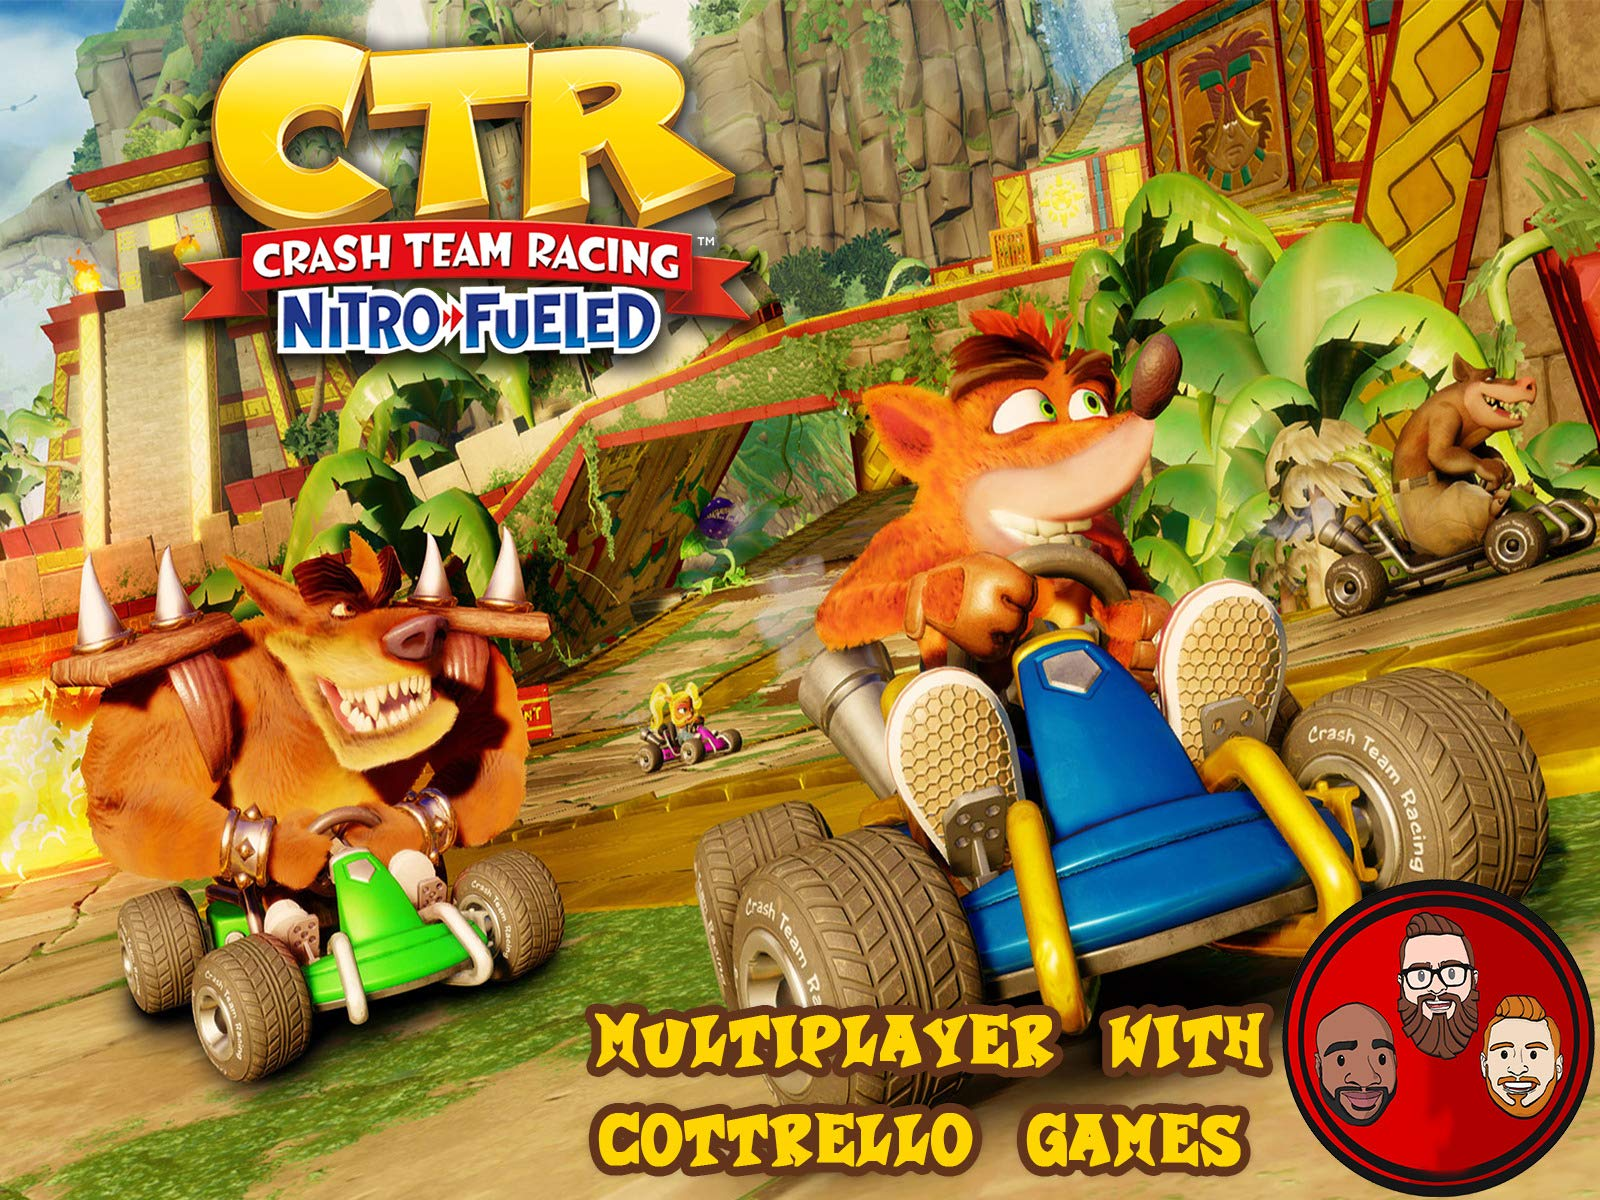 Crash Team Racing Nitro-Fueled Multiplayer with Cottrello Games